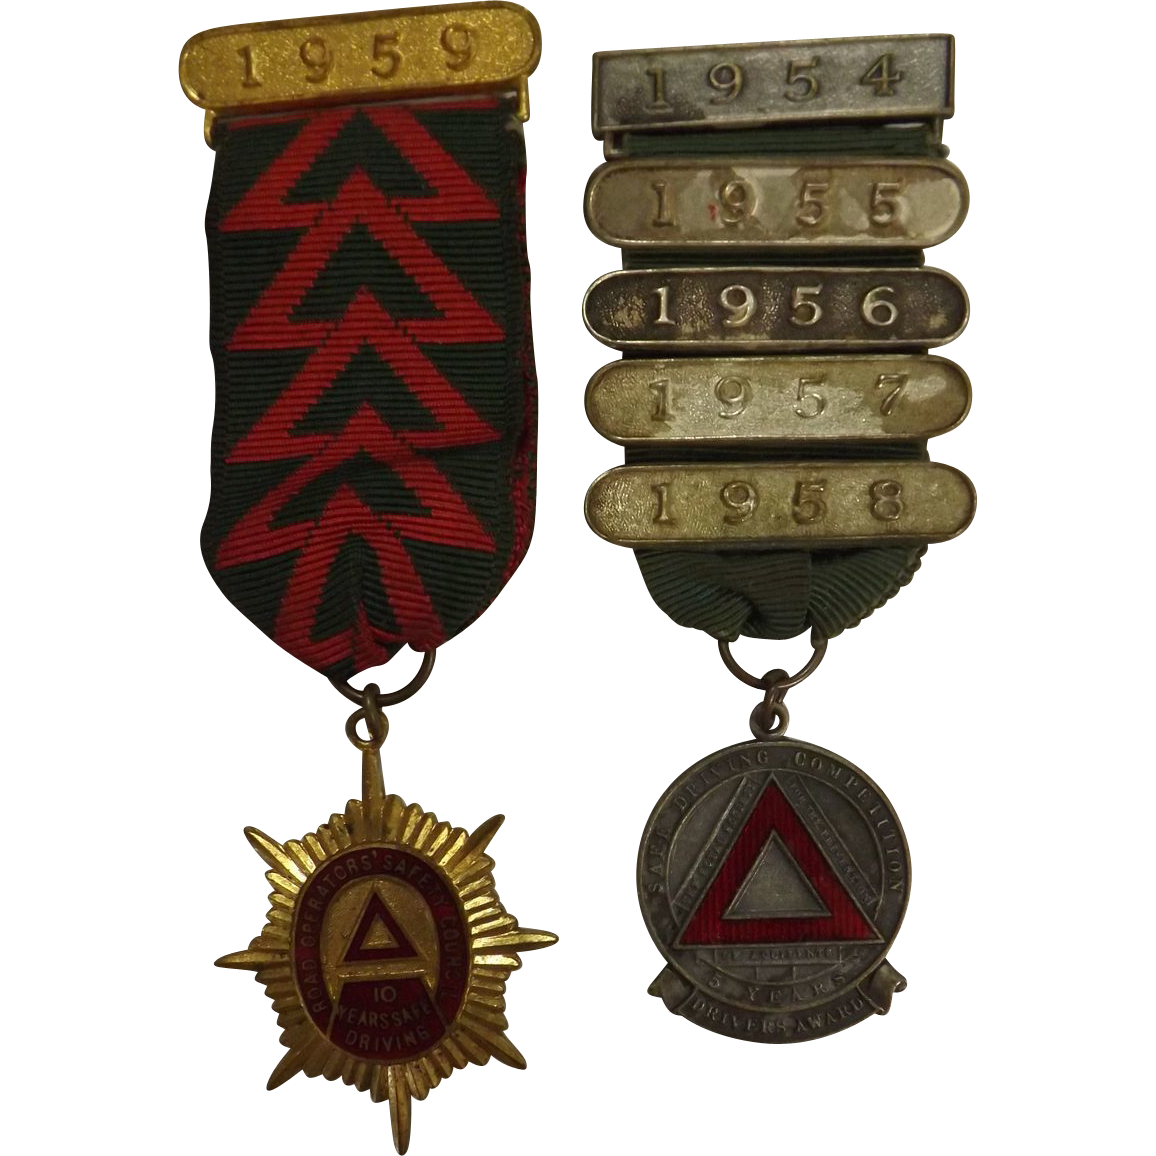 UK Bus Drivers Safety Award Medals 1949-1959